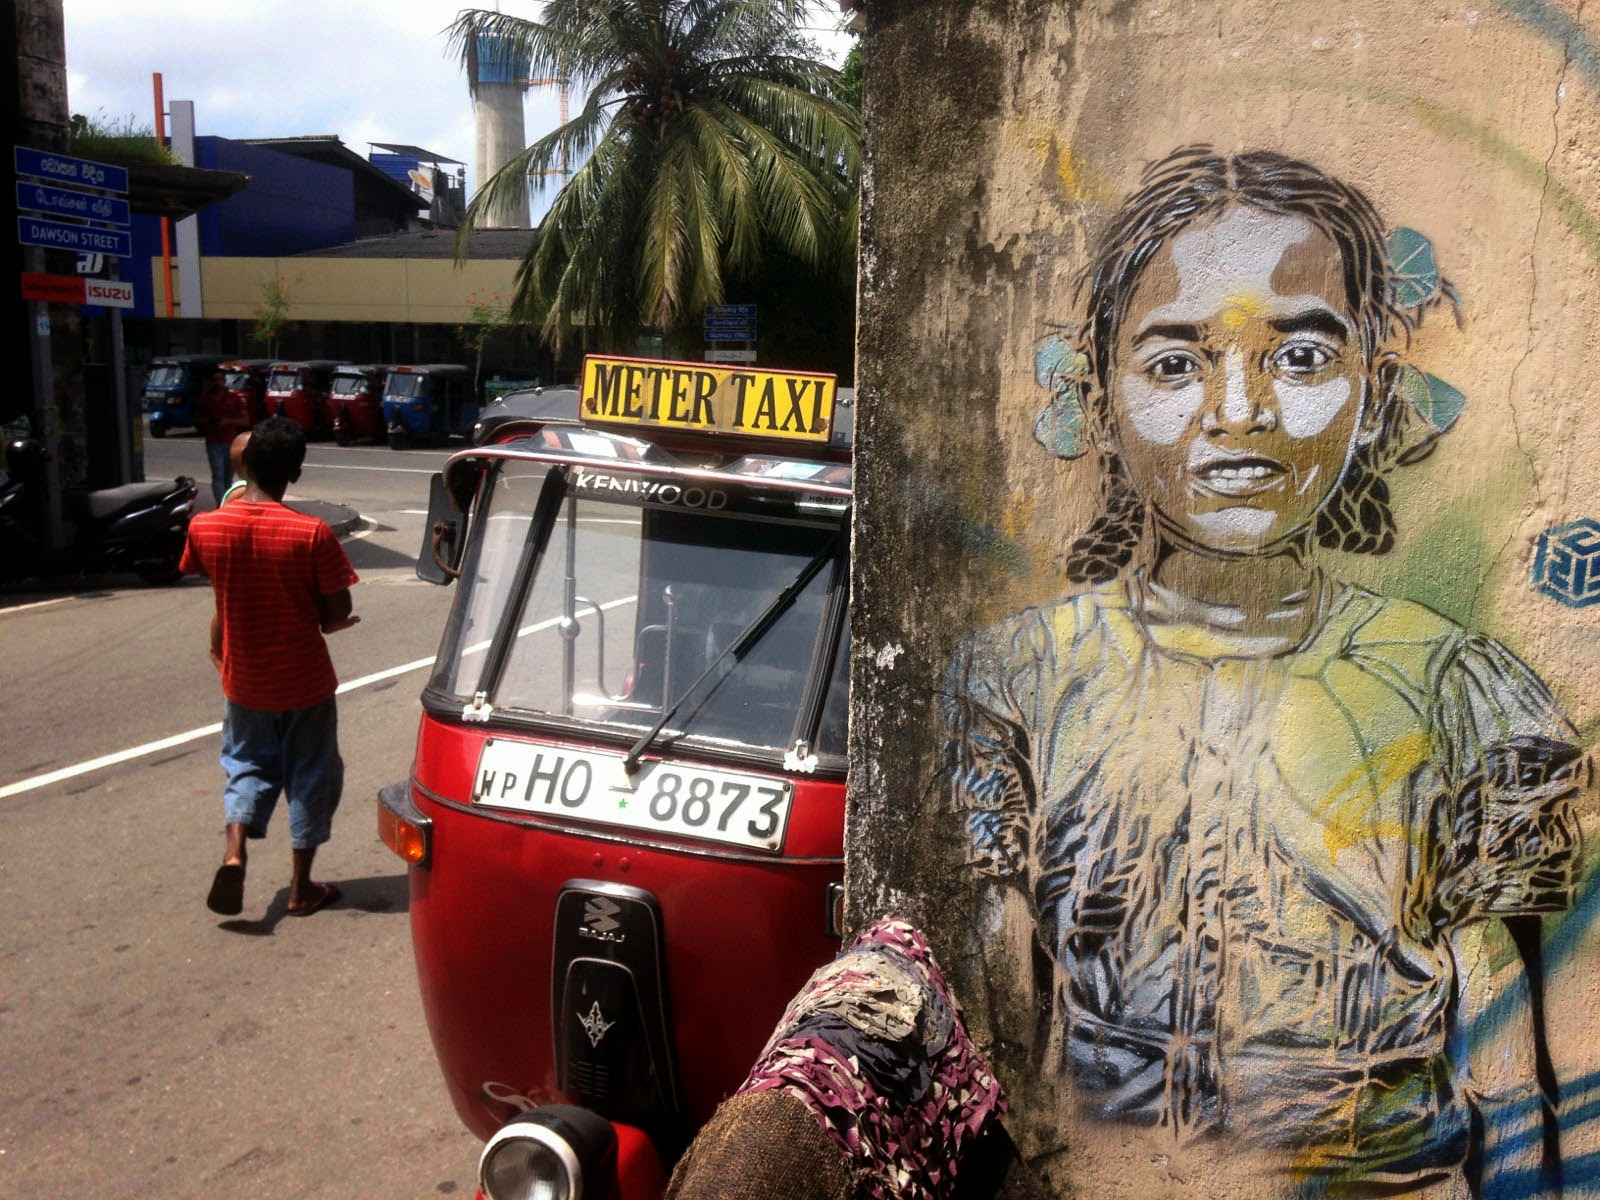 C215 is currently in Sri Lanka where he spent the last few days beautifying the streets with his intricate stencils.